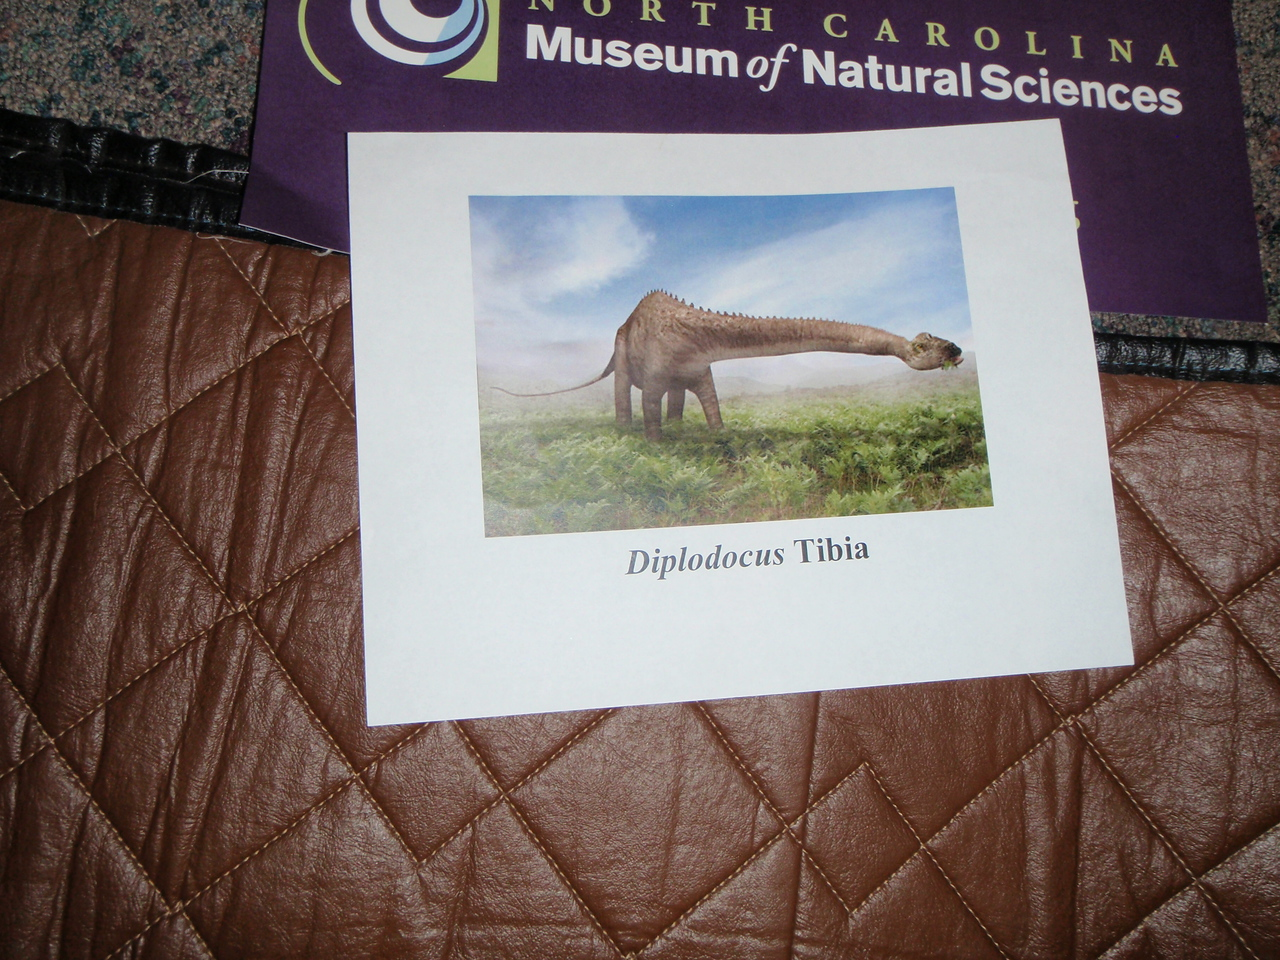 The museum allowed guests to compare their height to the tibia of a Diplodocus dinosaur.....